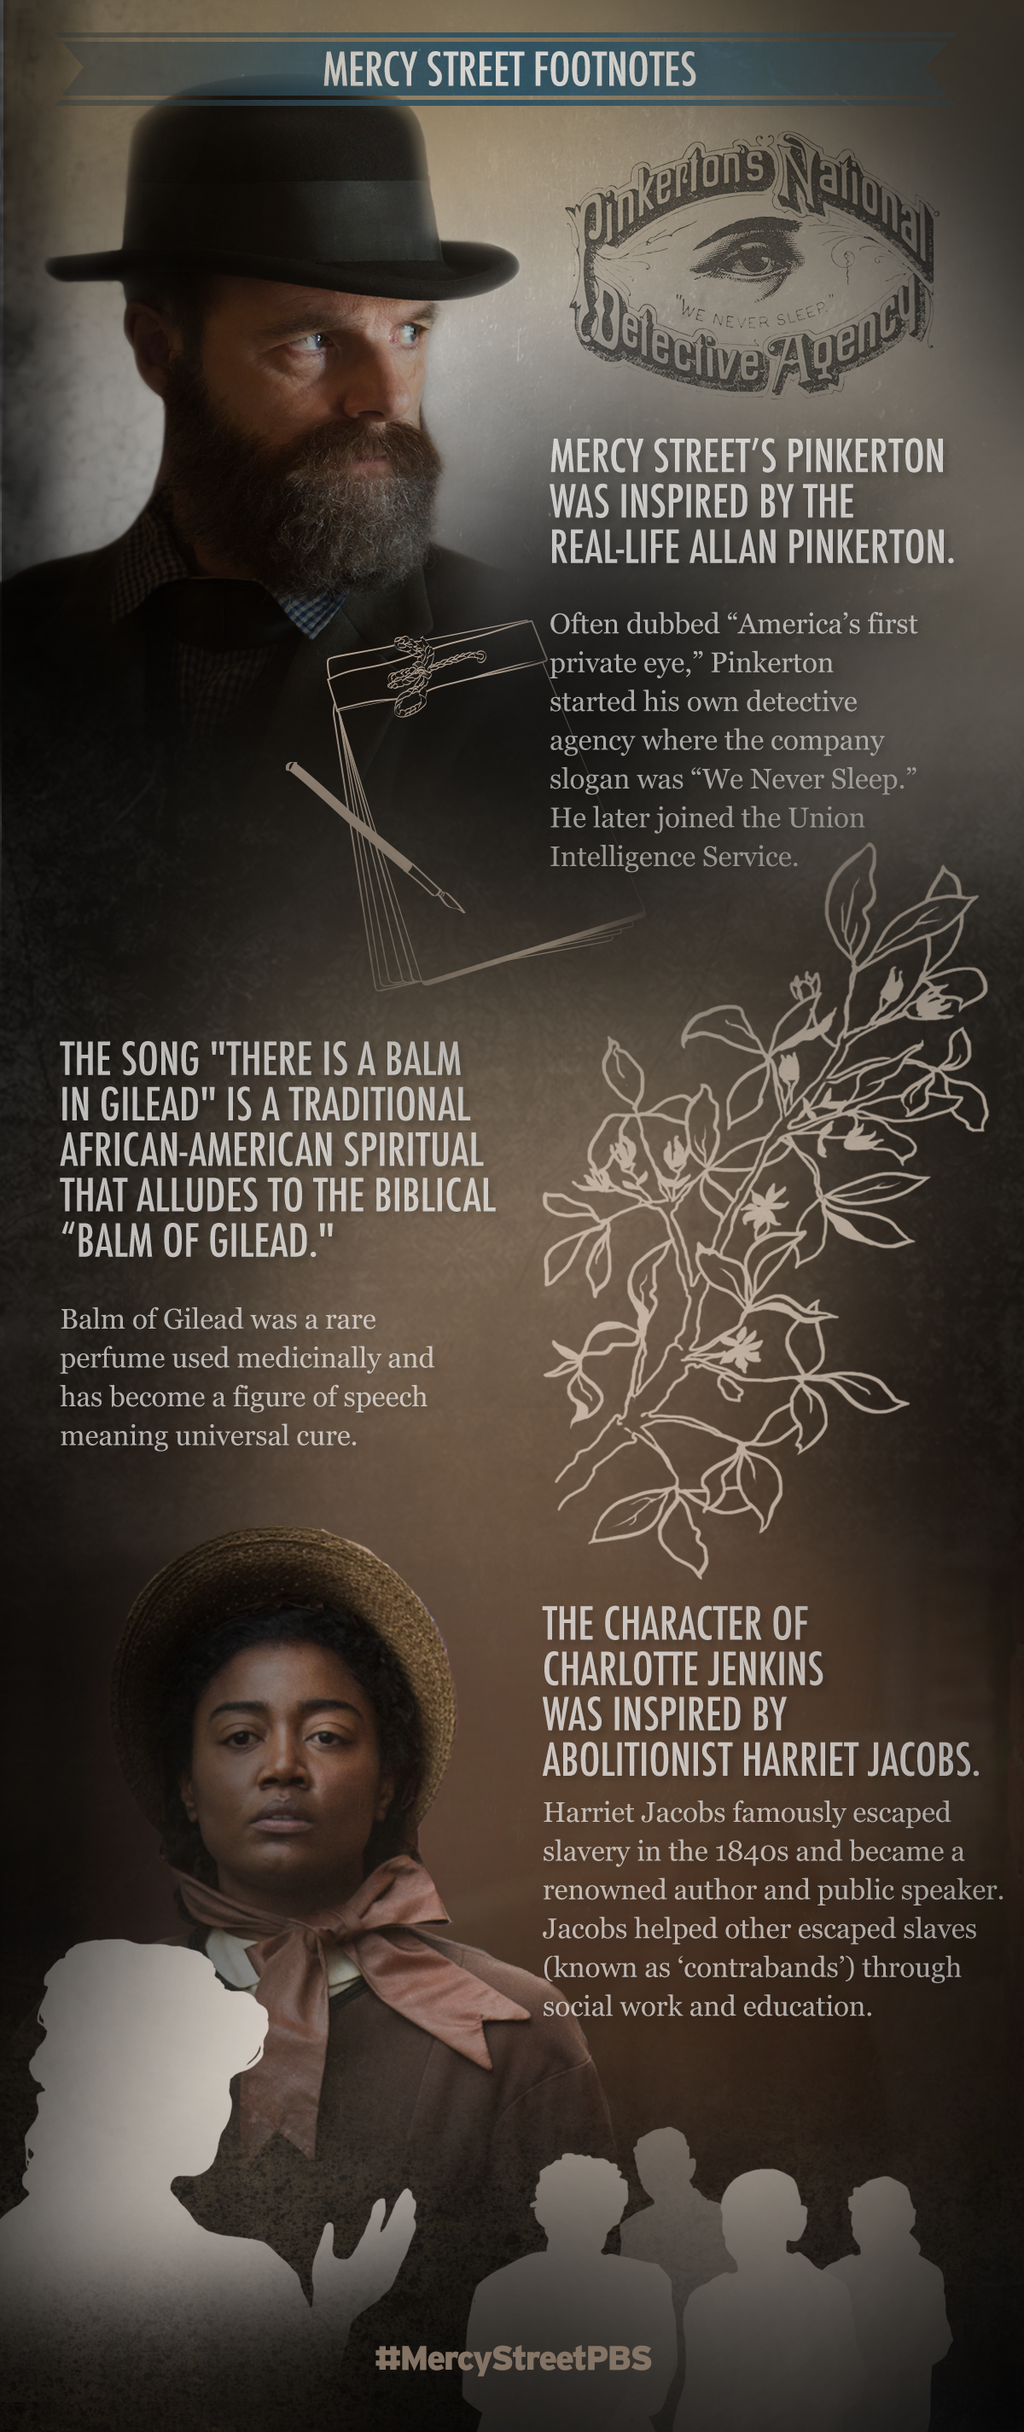 Mercy Street Footnote infographic